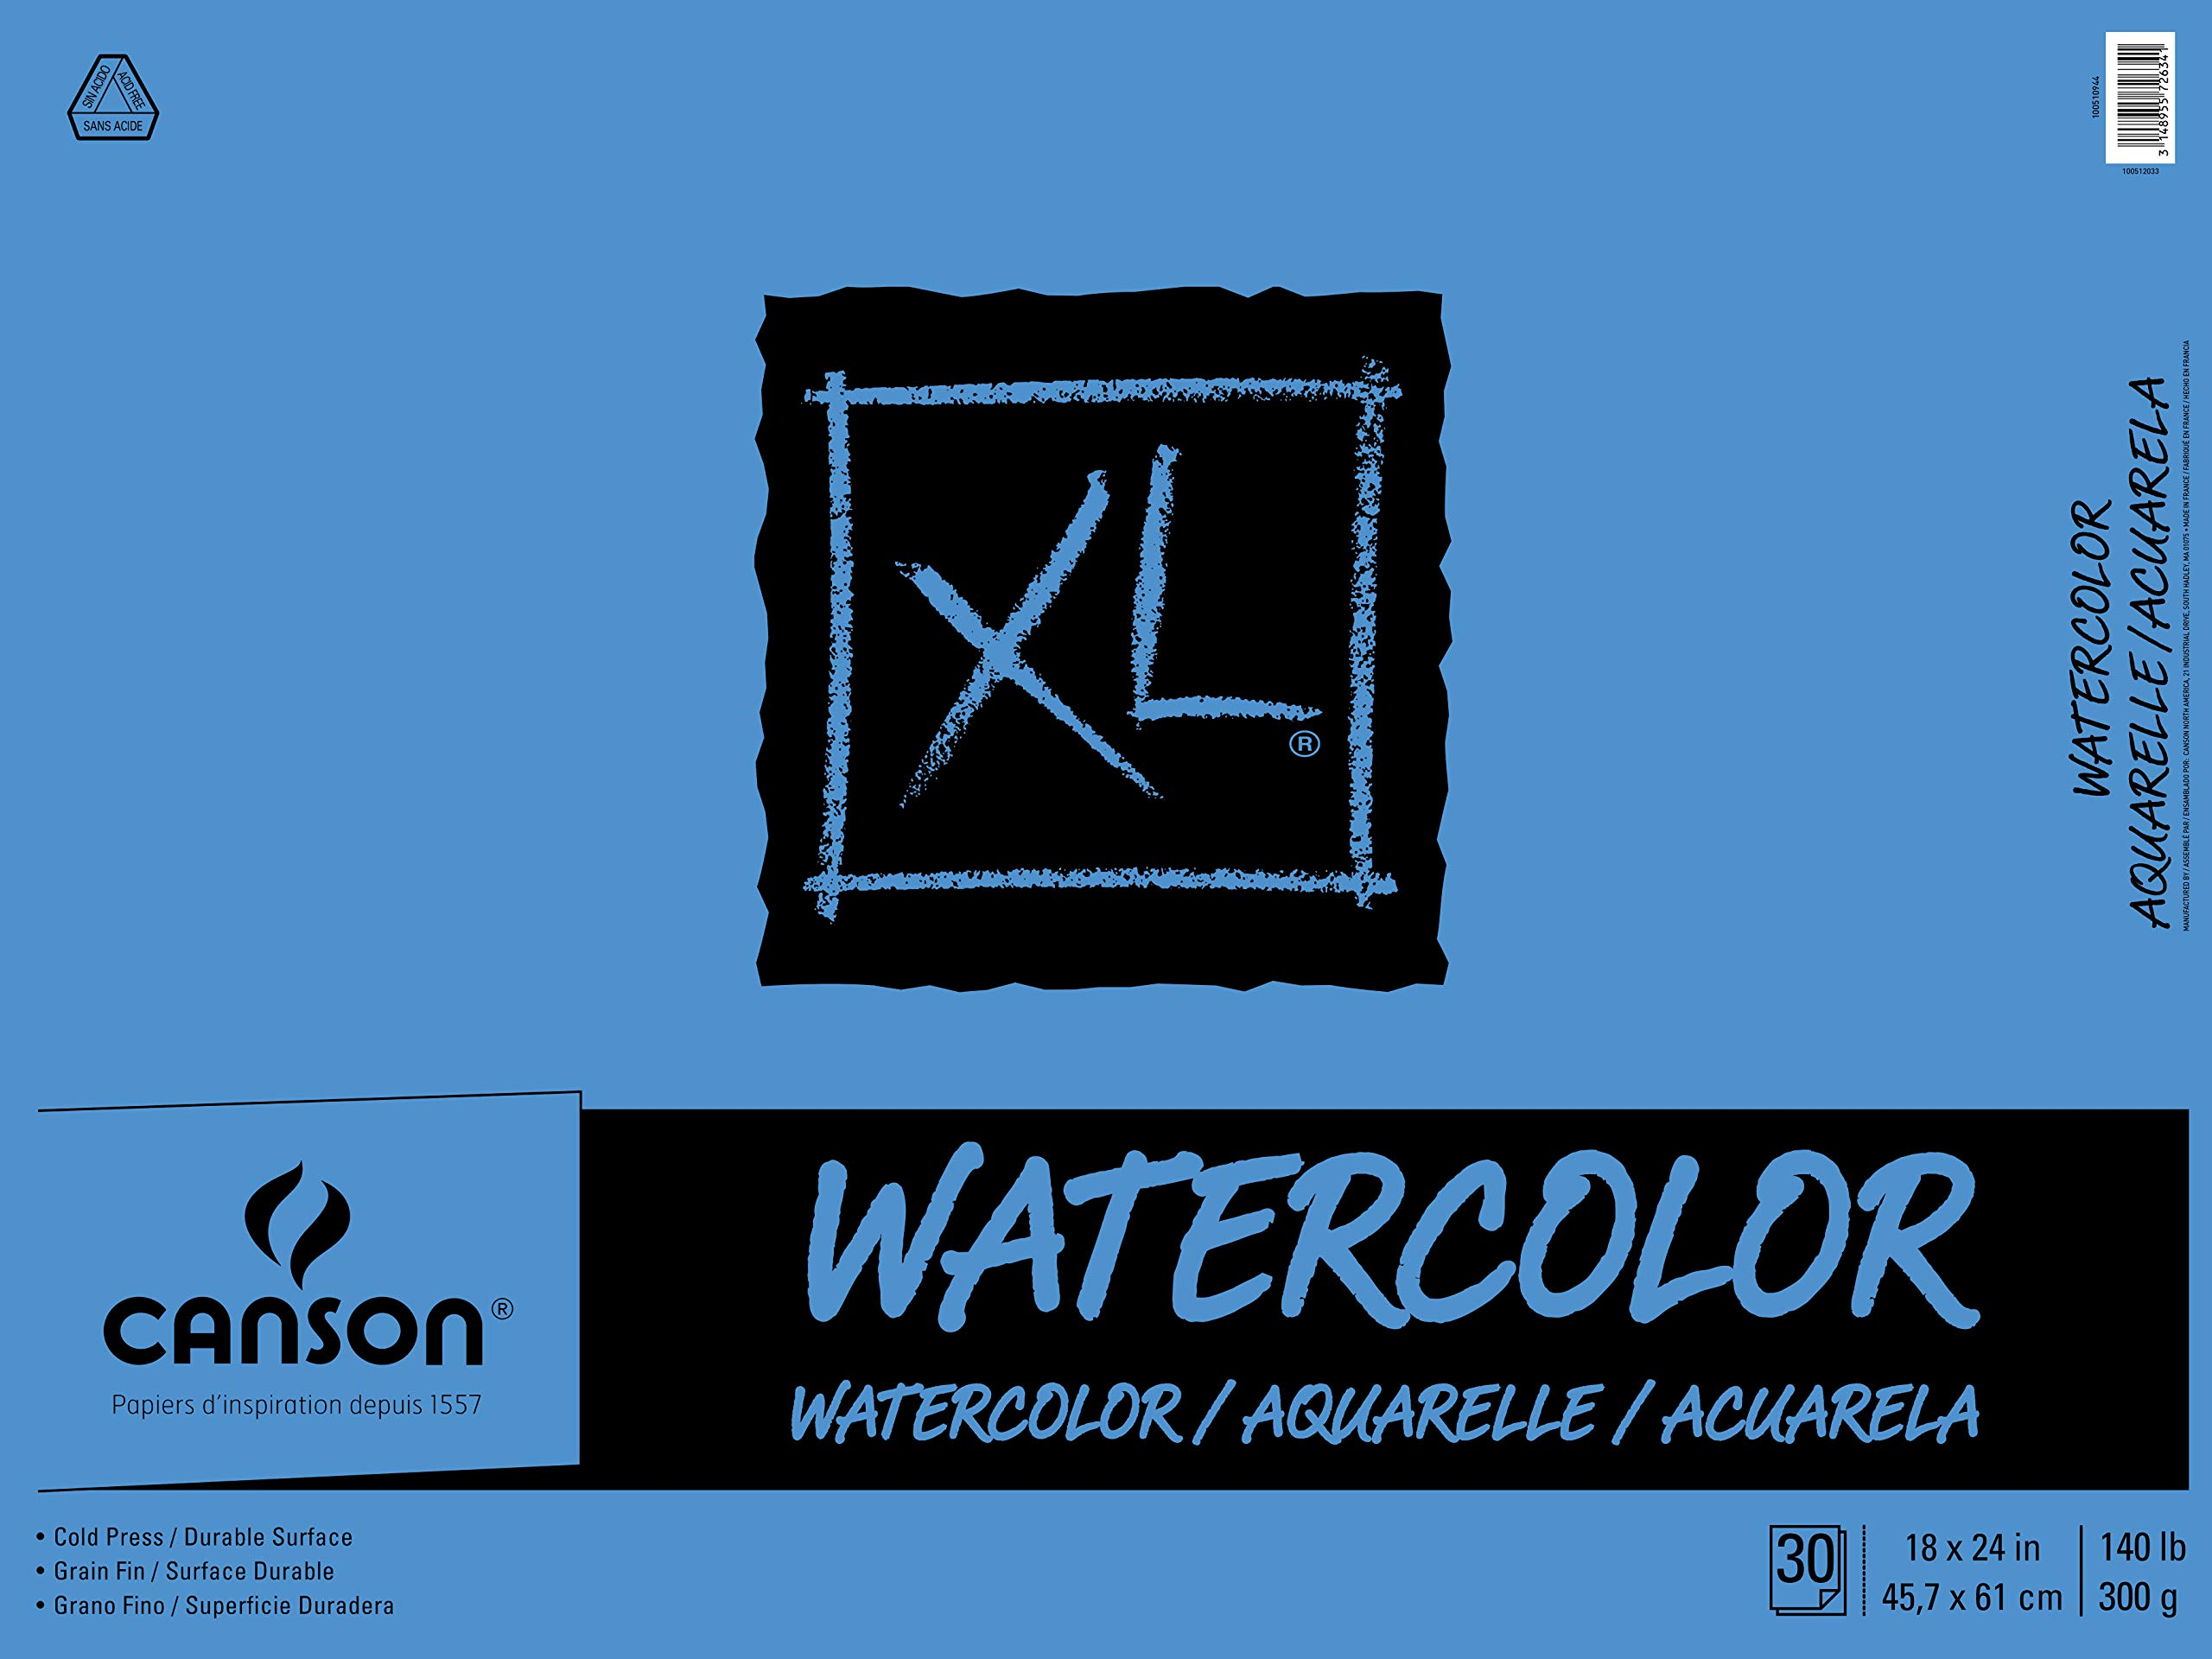 Canson XL Series Watercolor Textured Paper Pad for Paint, Pencil, Ink, Charcoal, Pastel, and Acrylic, Fold Over, 140 Pound, 18 x 24 Inch, 30 Sheets by Canson